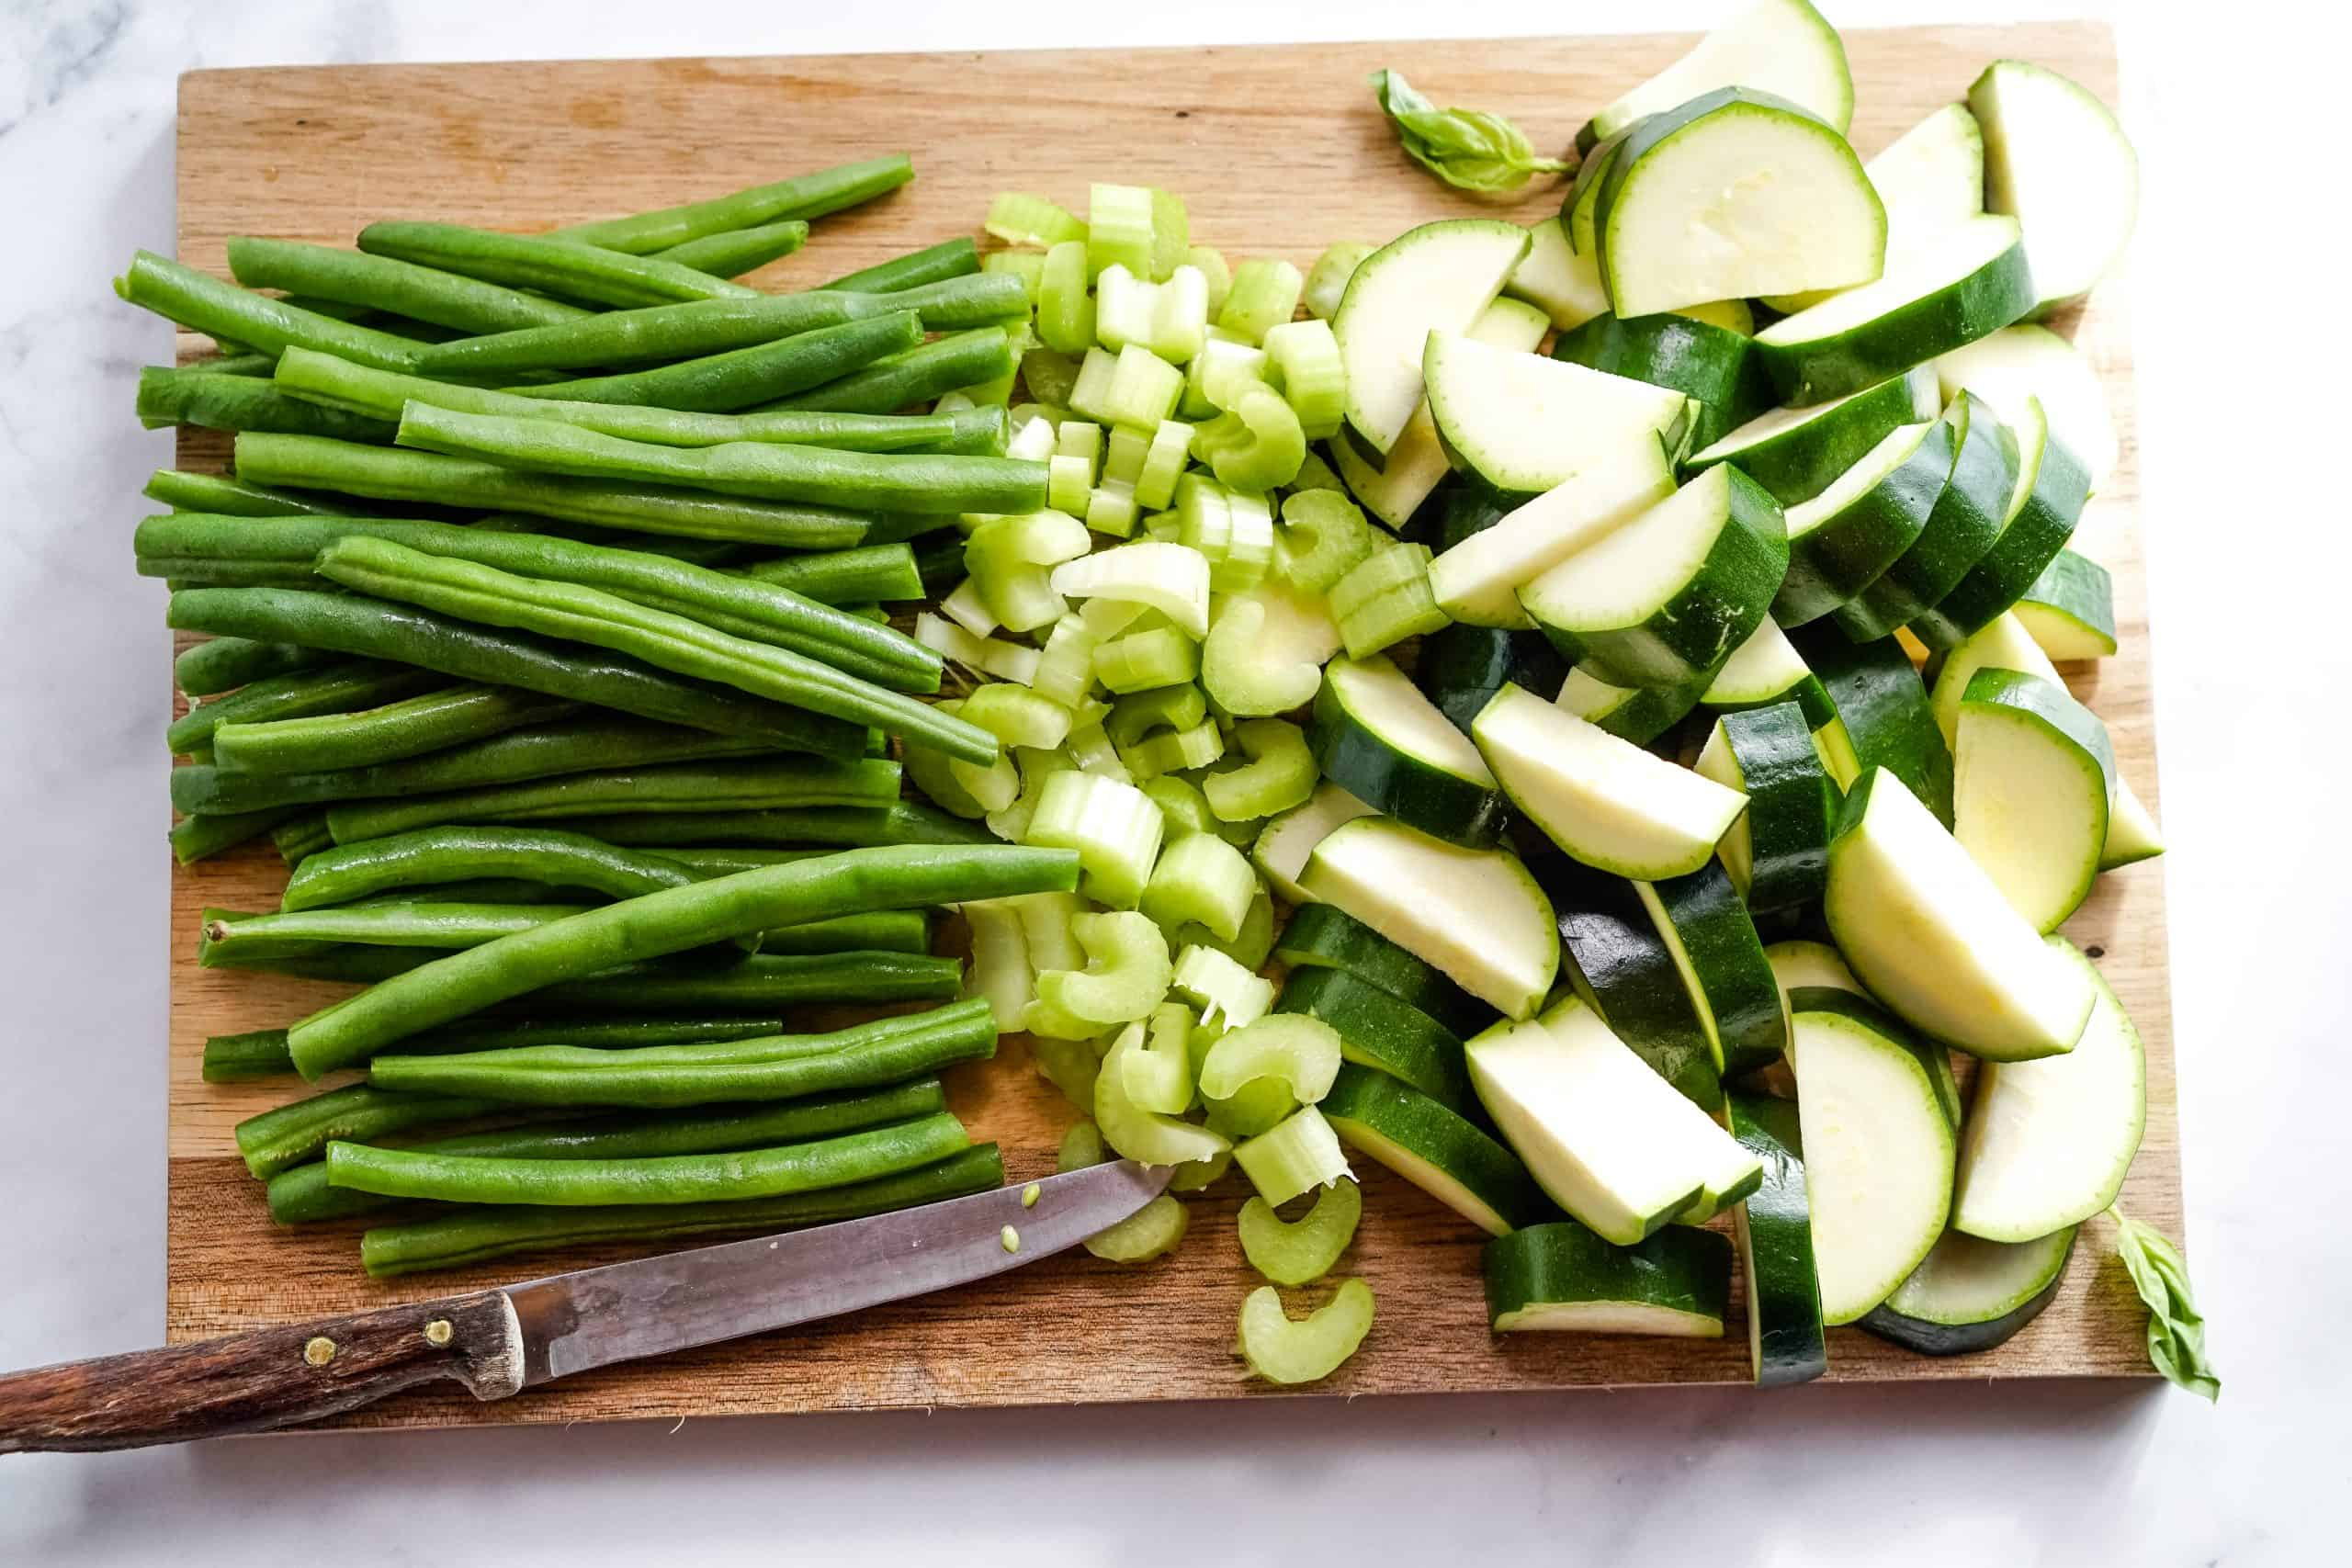 Green beans, chopped celery and zucchini on a cutting board.